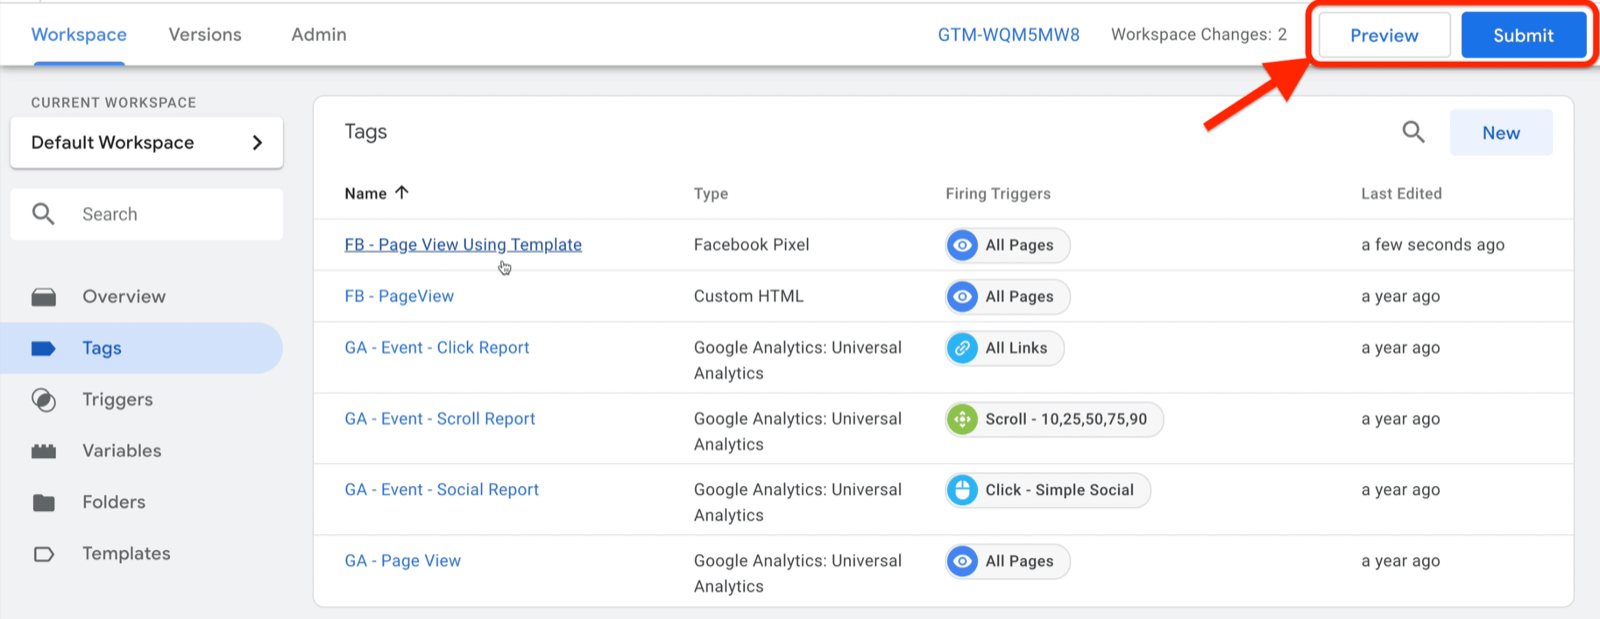 example google tag manager dashboard workspace with tags selected and several example tags shown with preview and submit buttons highlighted on the top right